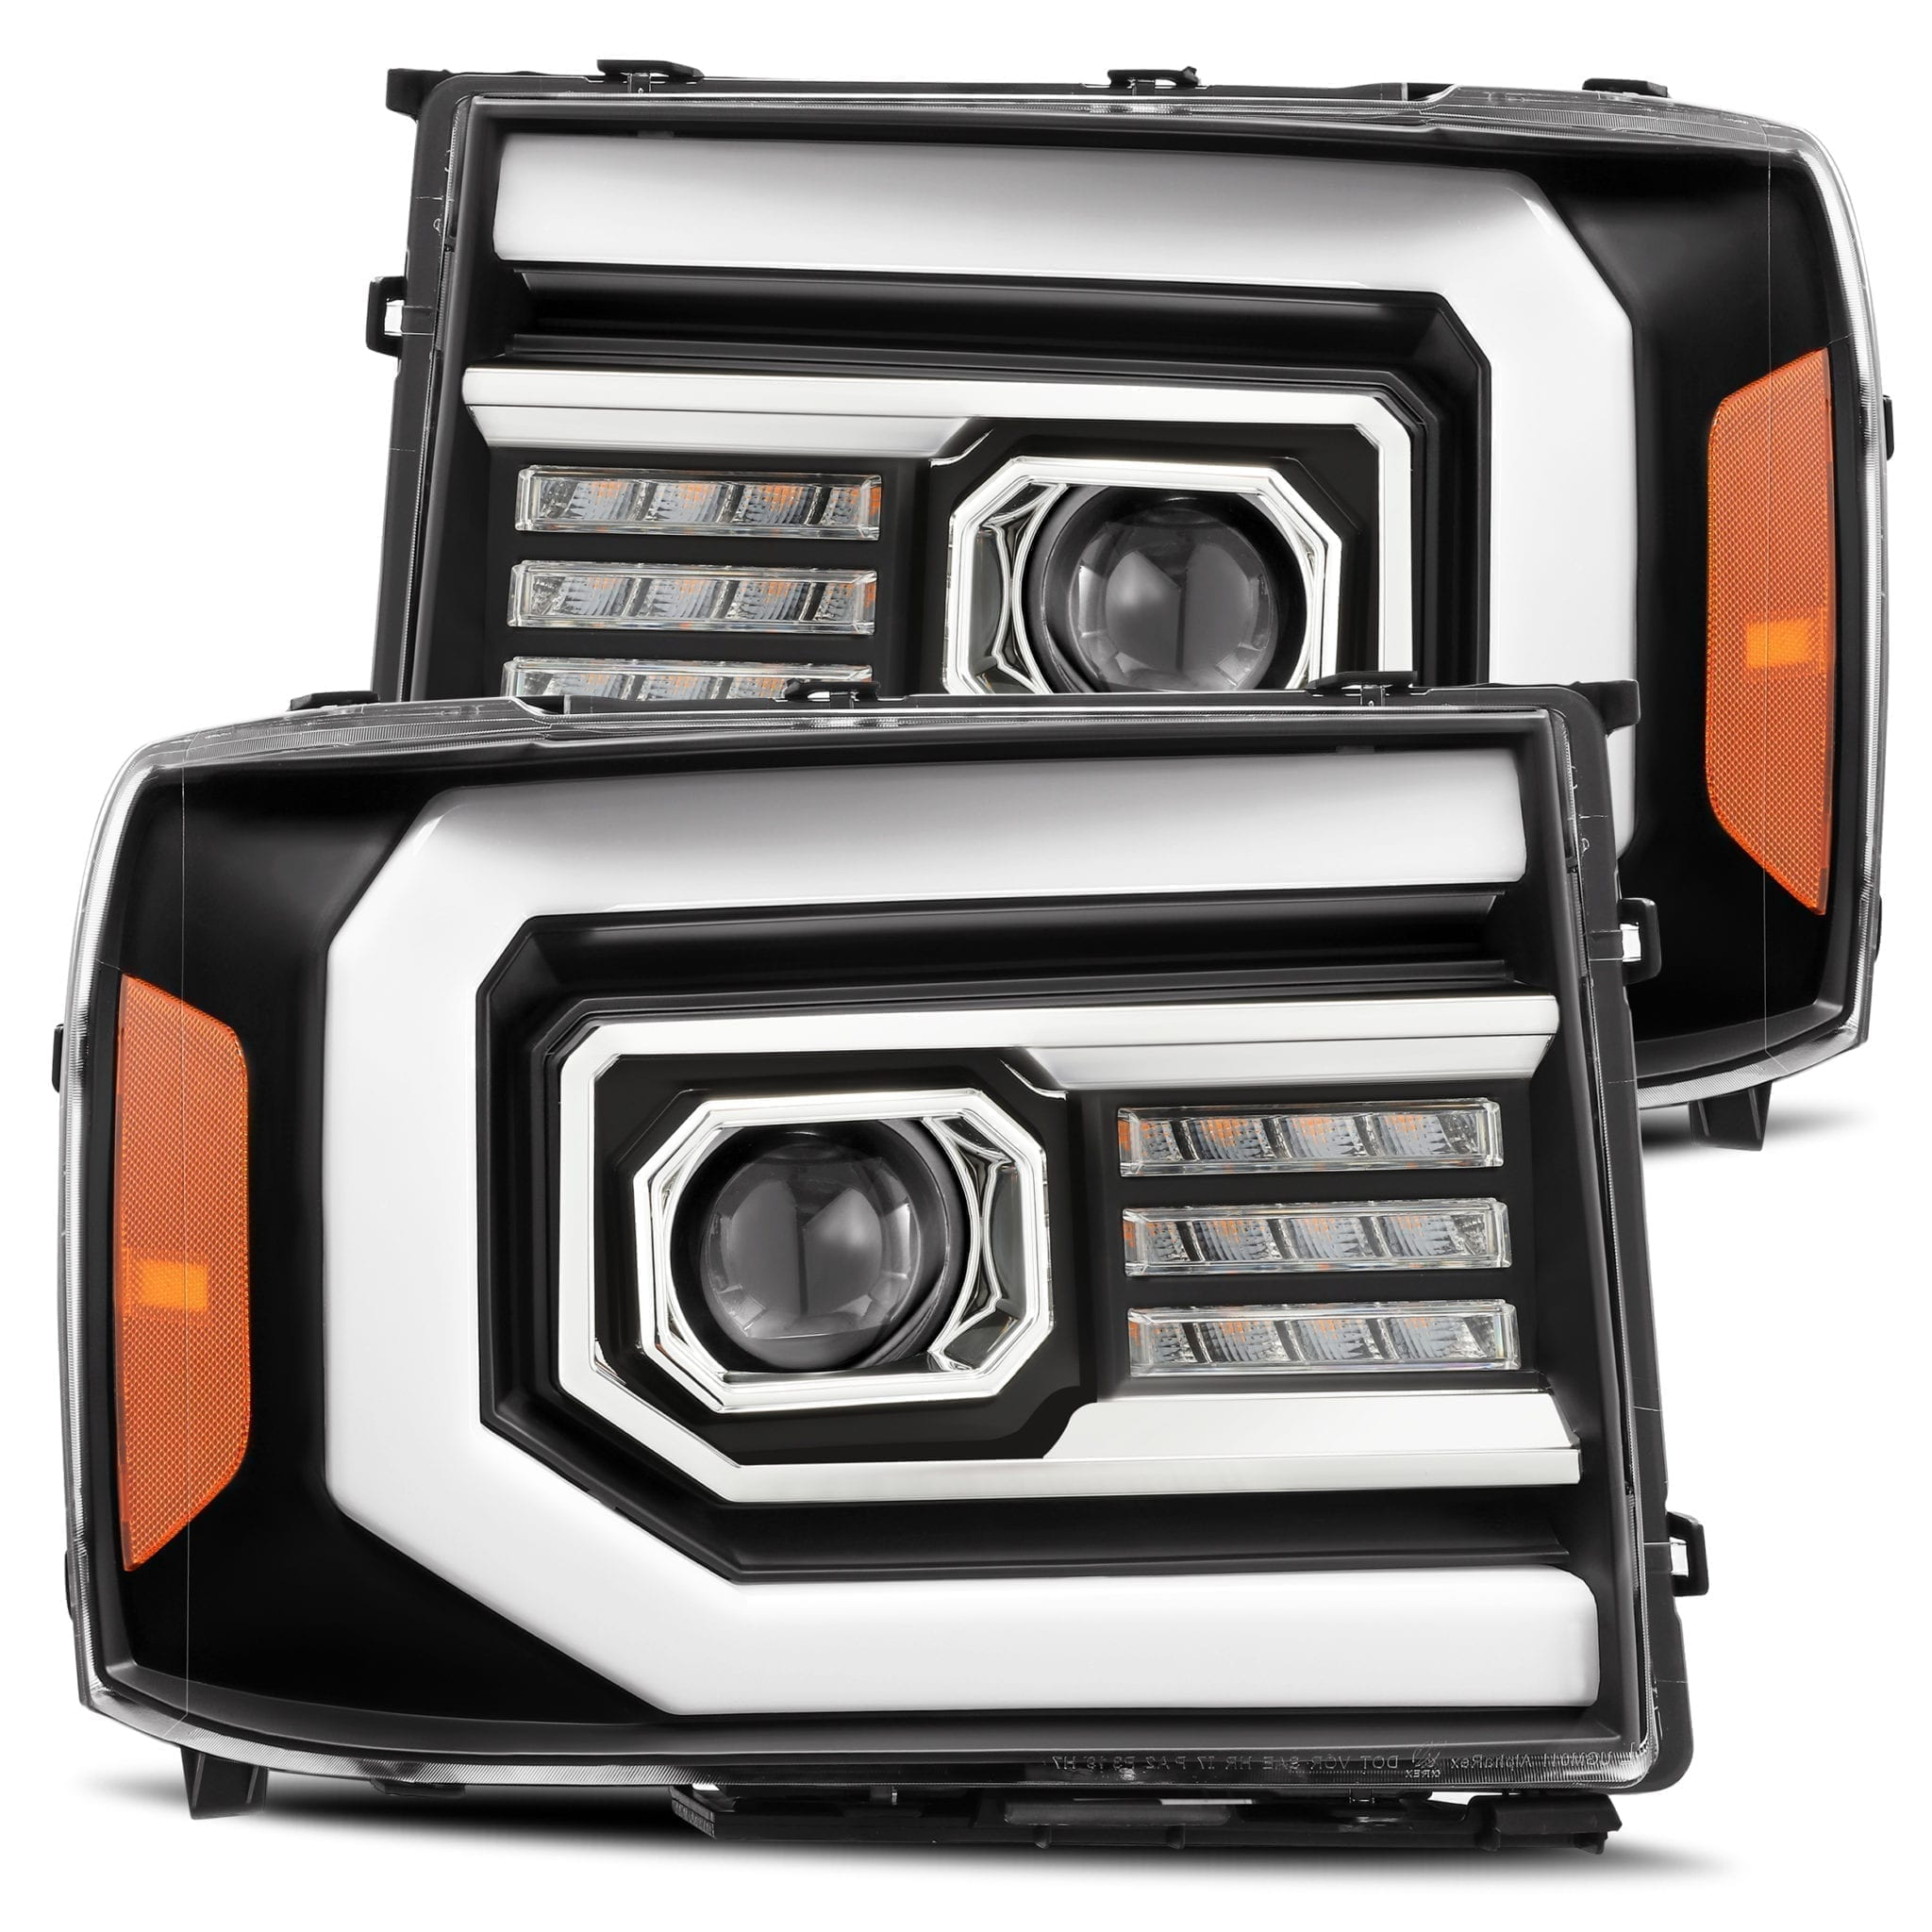 AlphaRex GMC Sierra 2007 2008 2009 2010 2011 2012 2013 PRO-Series Projector Headlights Black